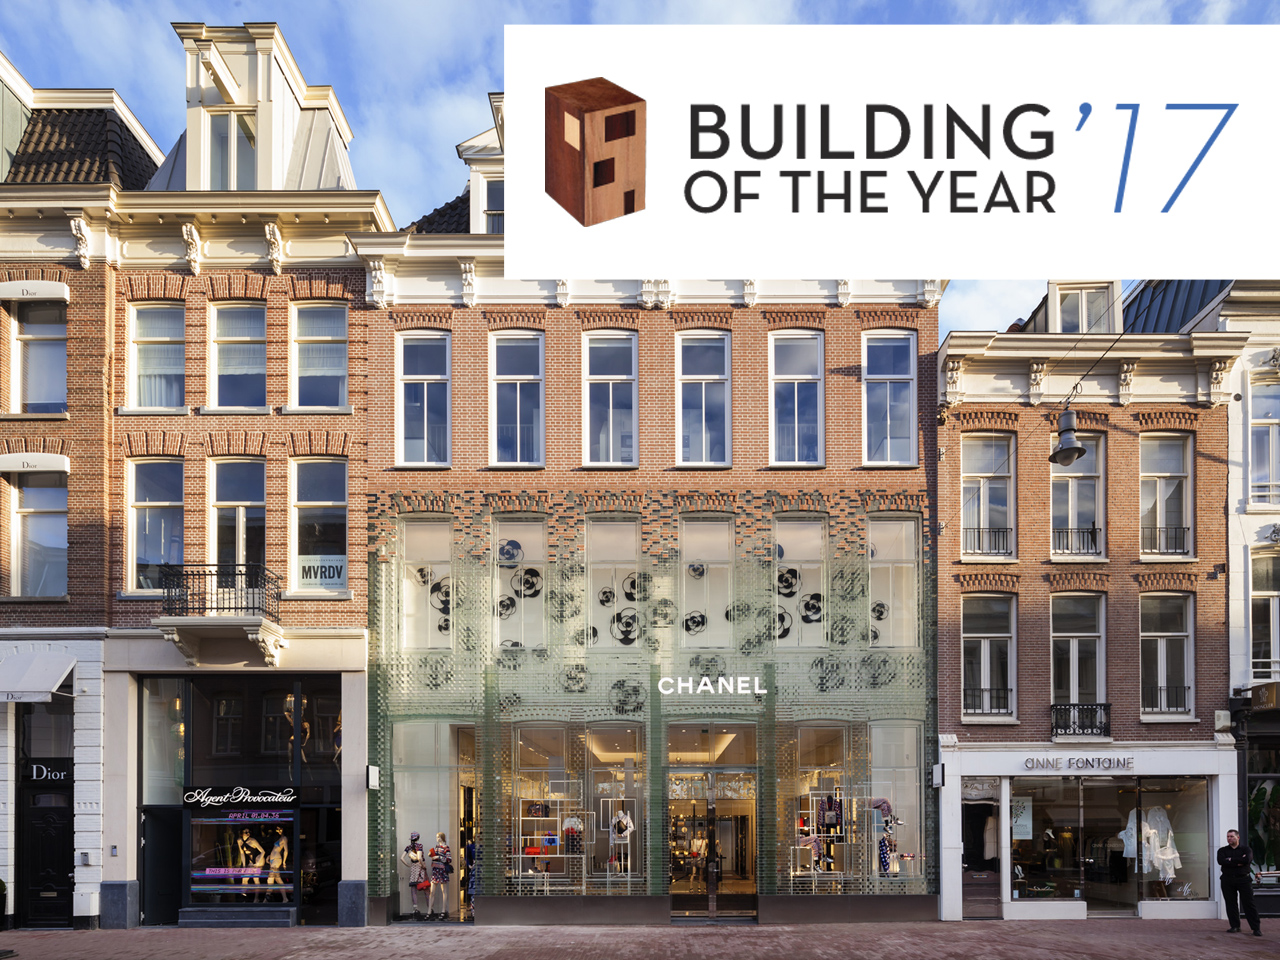 Crystal Houses win Commercial Architecture Category in ArchDaily Building of the Year Awards '17